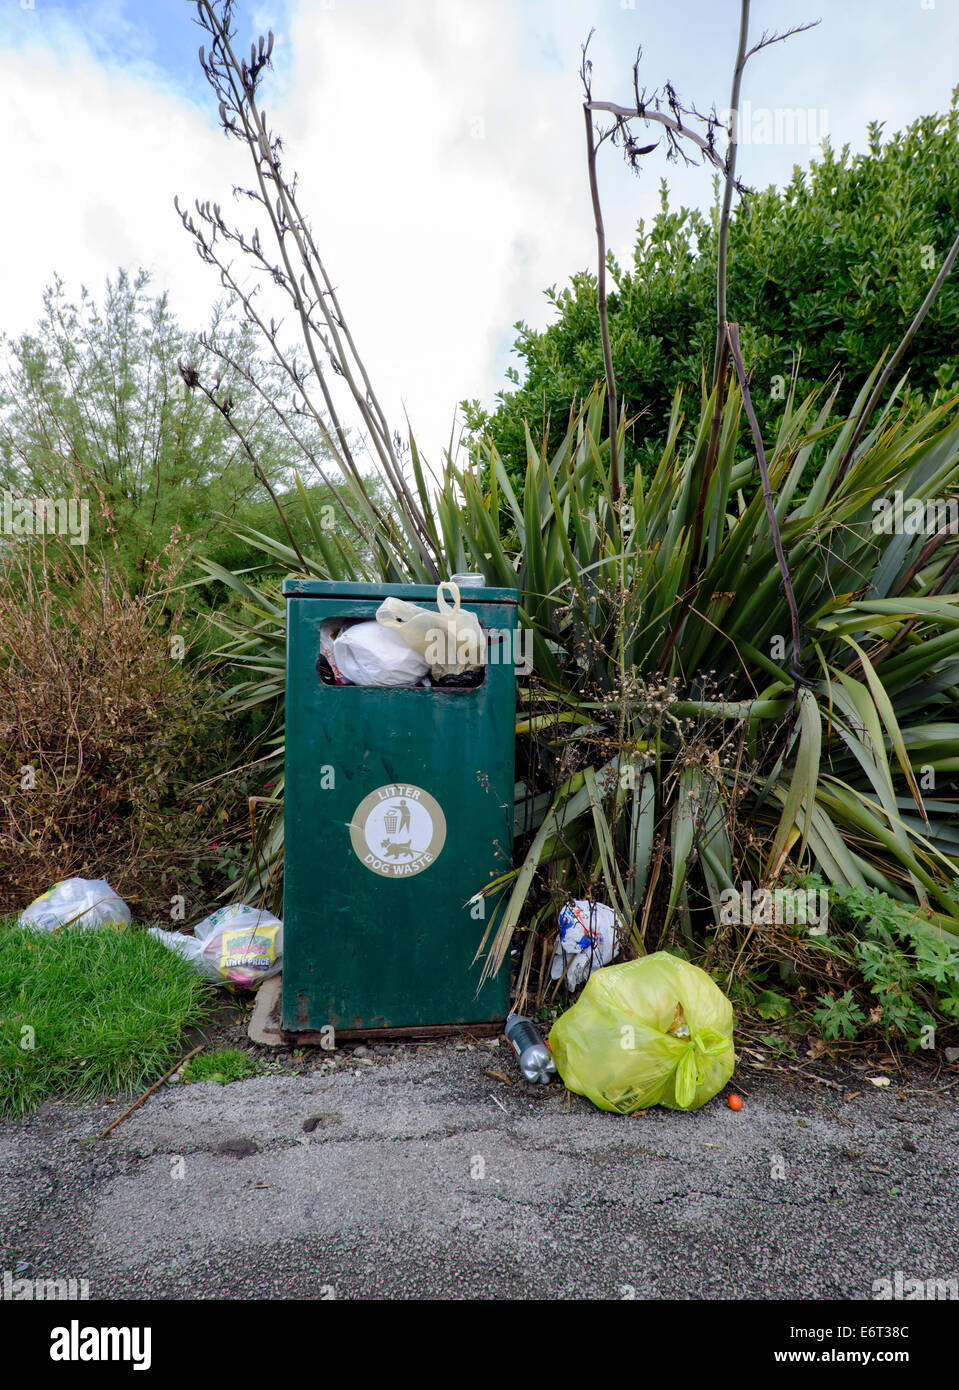 Overflowing waste bin with rubbish strewn around in a public park in Blackpool, Lancashire - Stock Image